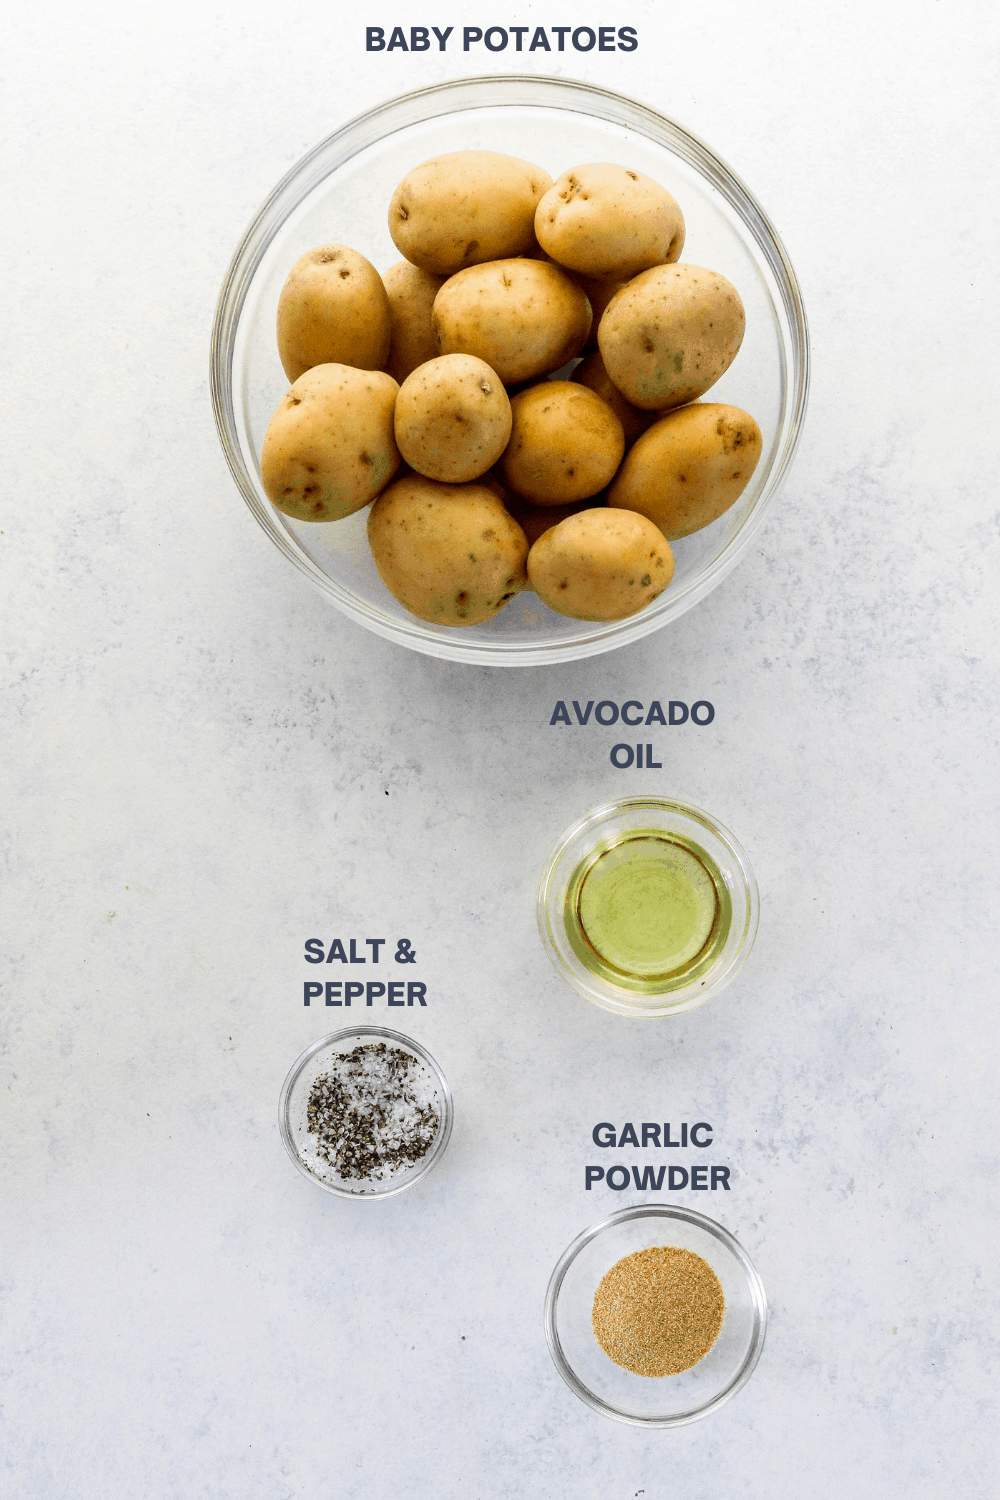 Round glass bowl filled with golden baby potatoes with a small glass bowl oil, a bowl if salt and pepper and a bowl of garlic powder in front of it.